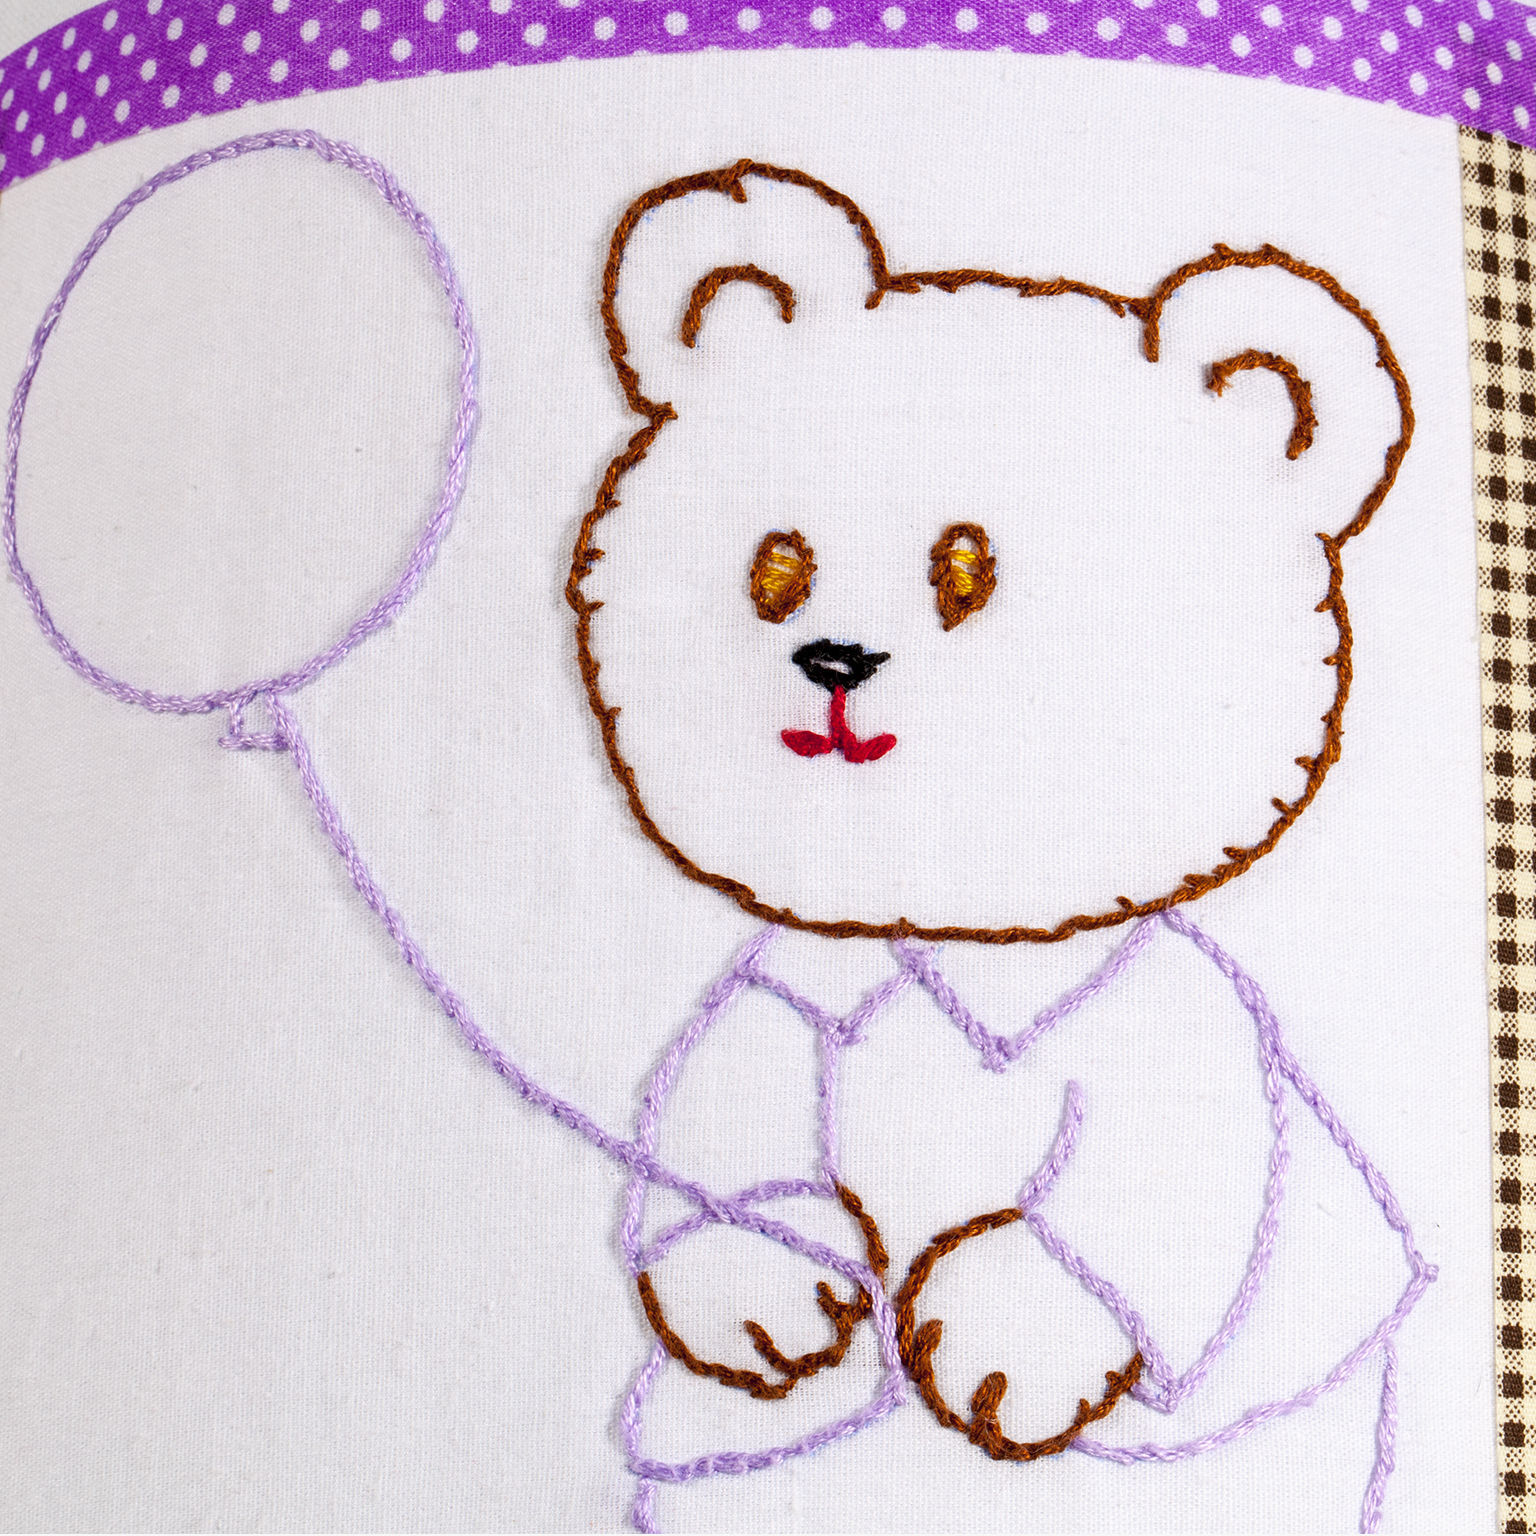 Vintage Hand Embroidered Teddy Bear Quilt Piece on New Lamp Shade - Free Shippin